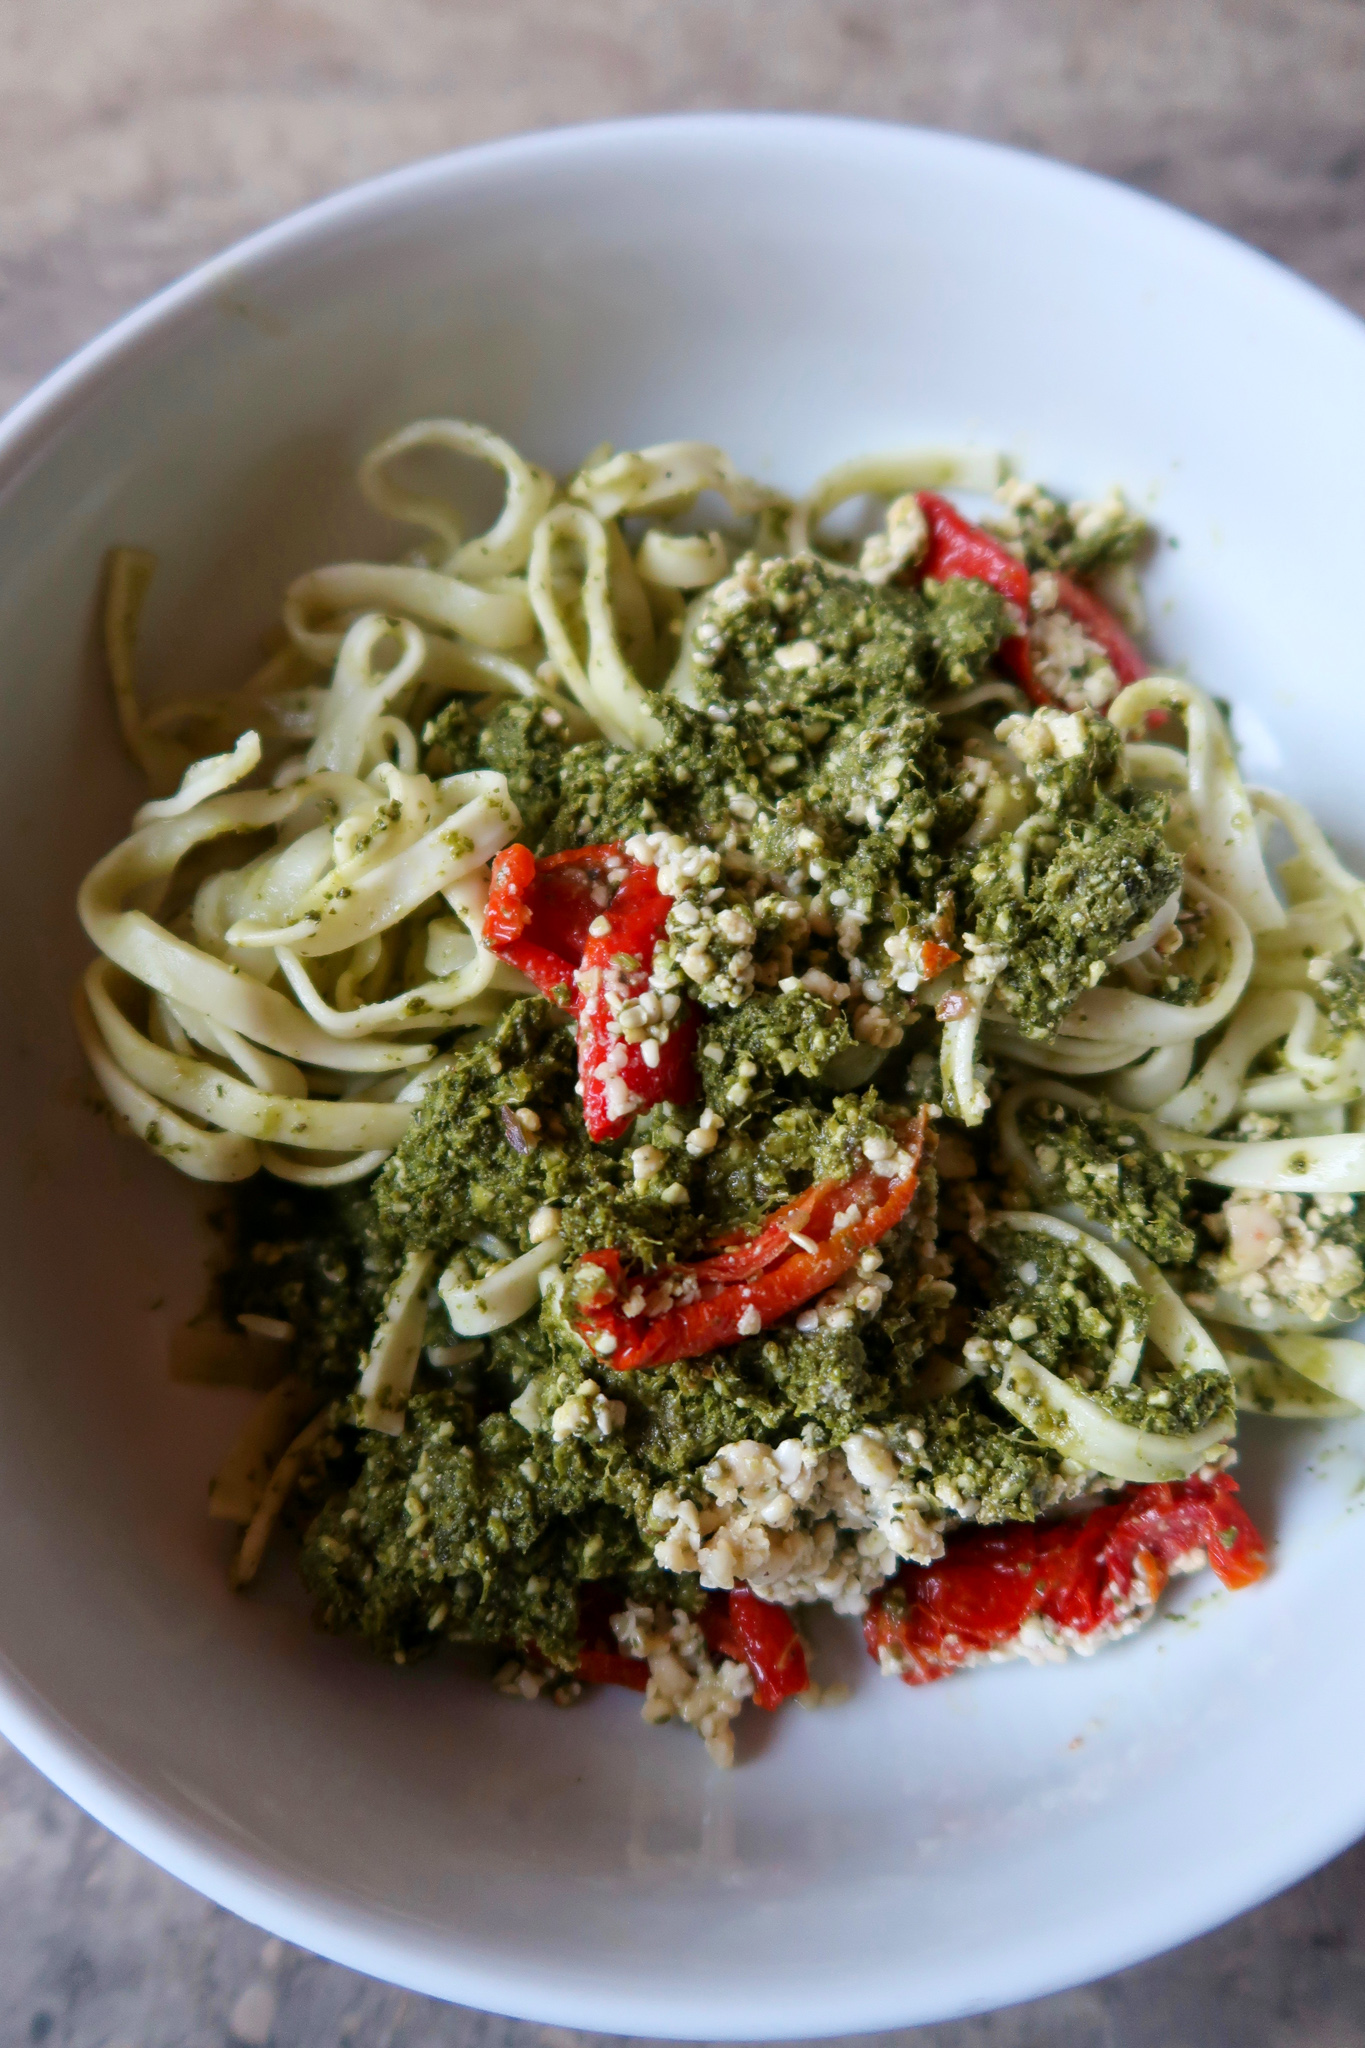 kale-pesto-noodle-bowl-splendid-spoon